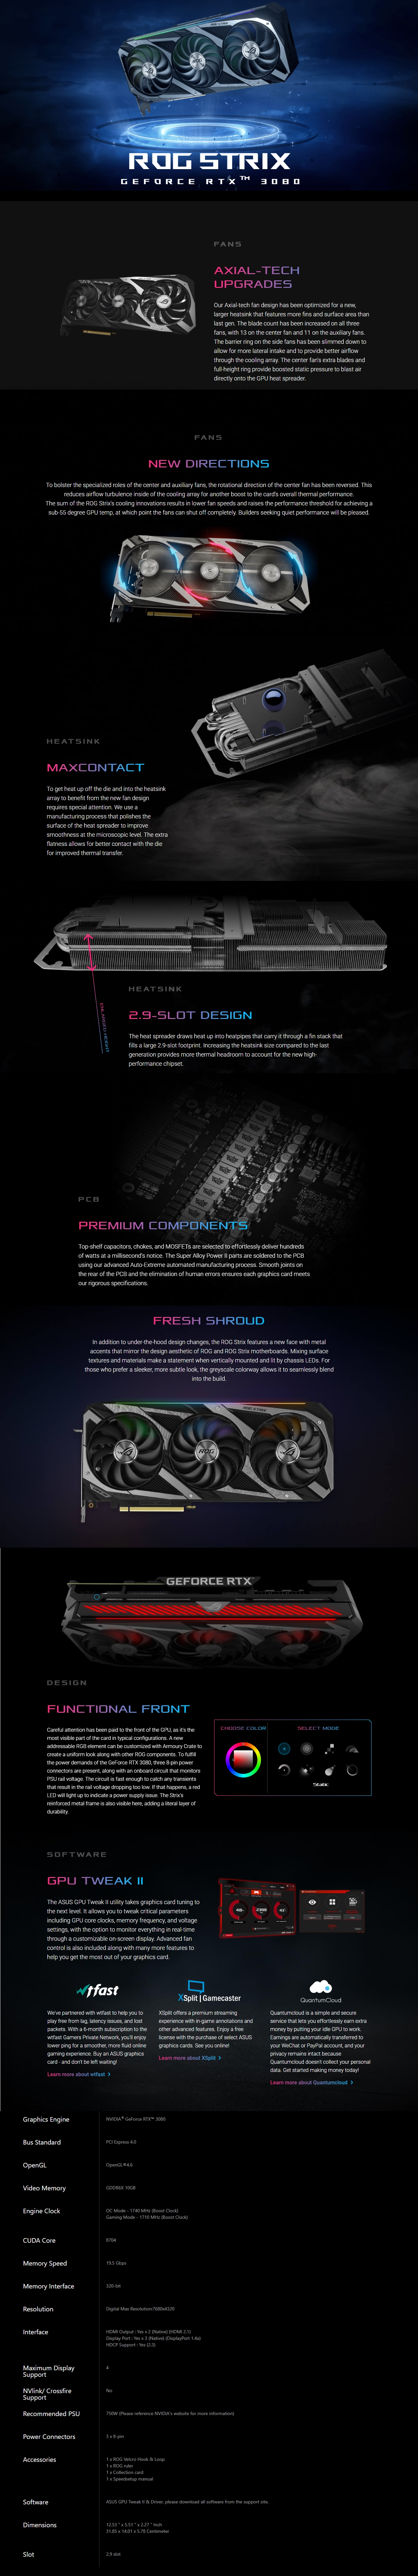 A large marketing image providing additional information about the product ASUS GeForce RTX 3080 ROG Strix Gaming 10GB GDDR6X - Additional alt info not provided